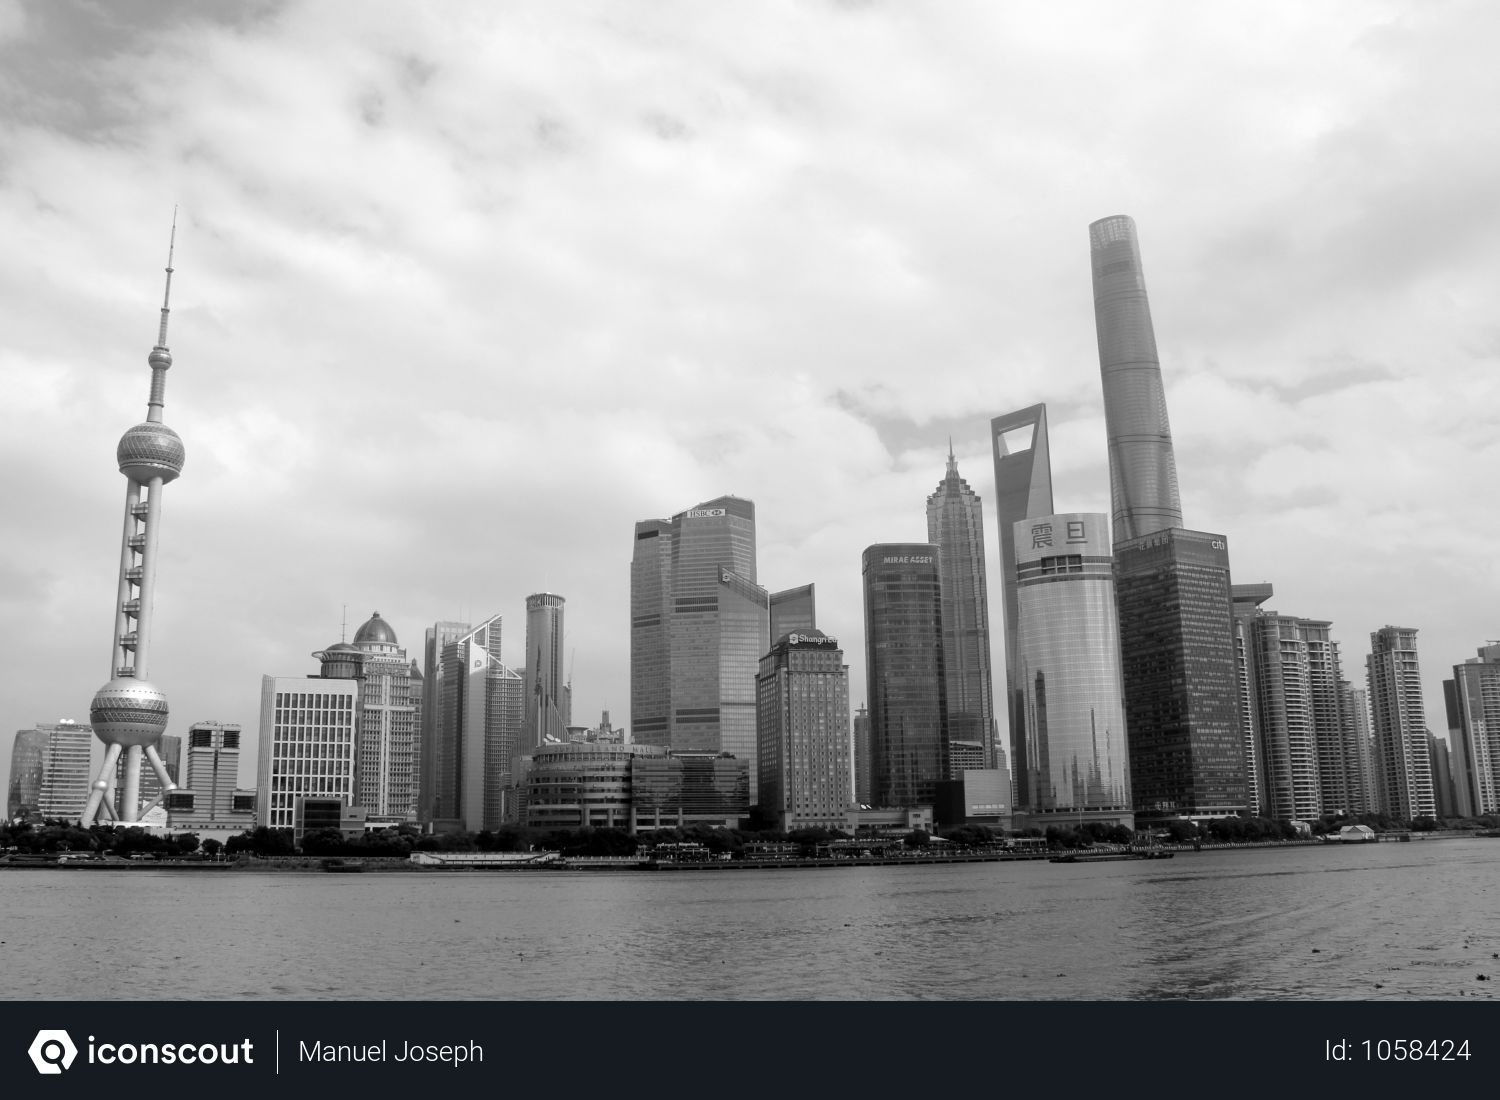 Free Black And White City View Of Buildings Photo Download In Png Jpg Format City Sky Black And White City Shanghai City